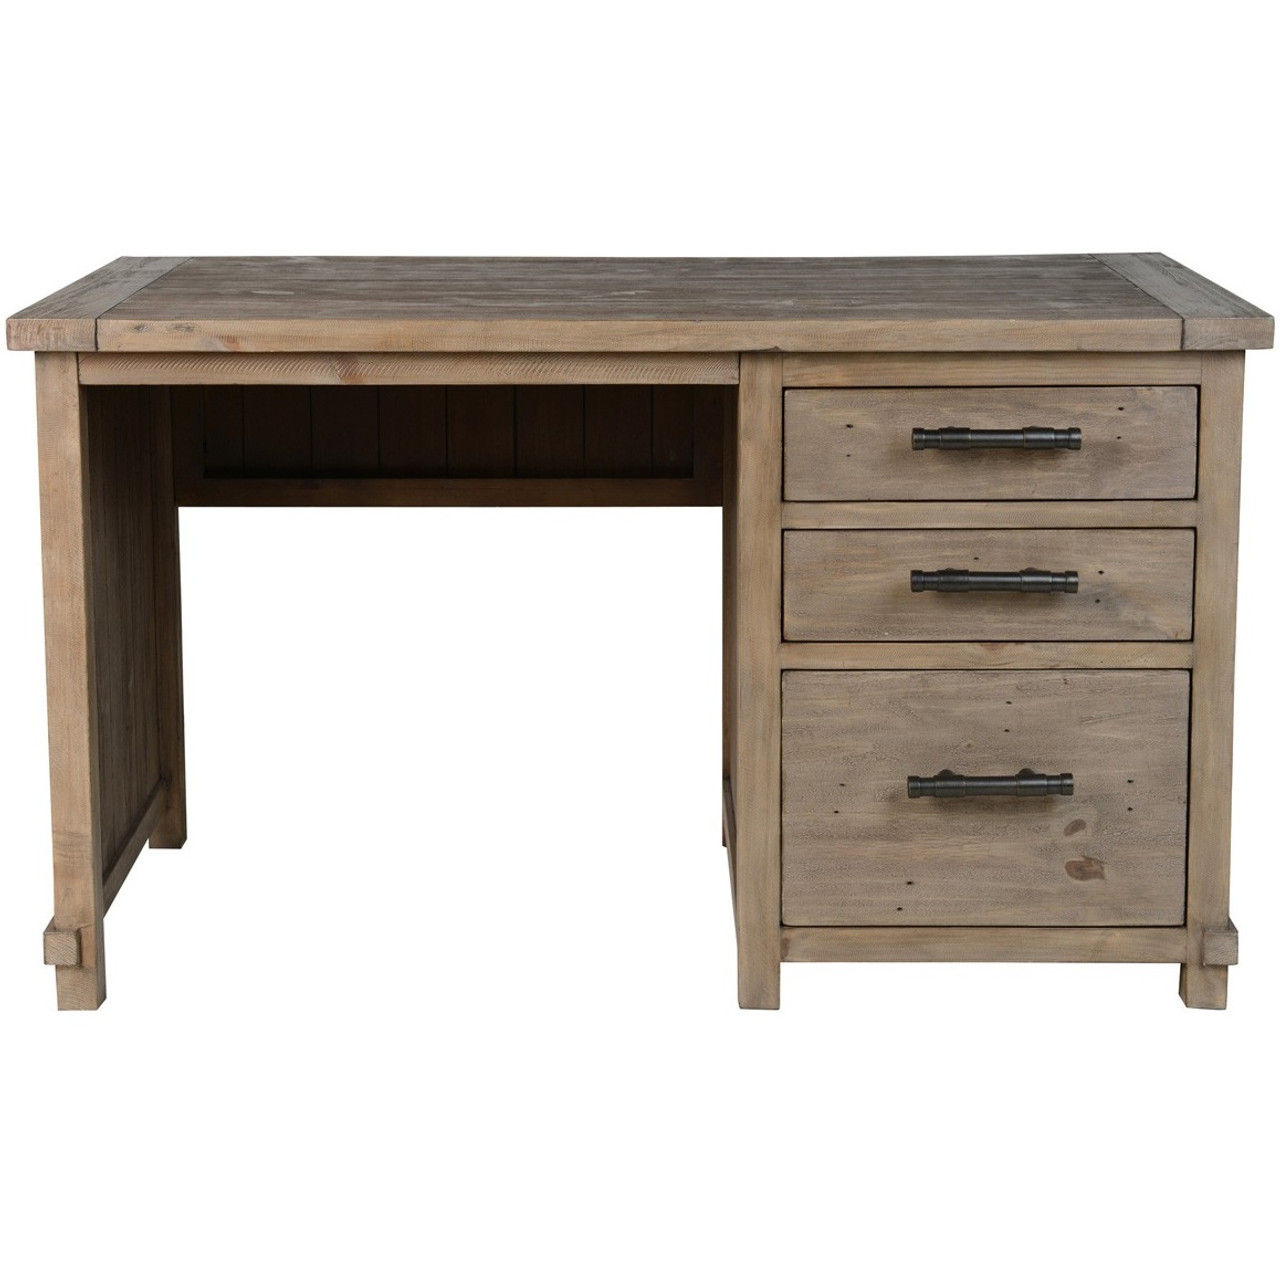 Farmhouse Reclaimed Wood Desk With File Storage